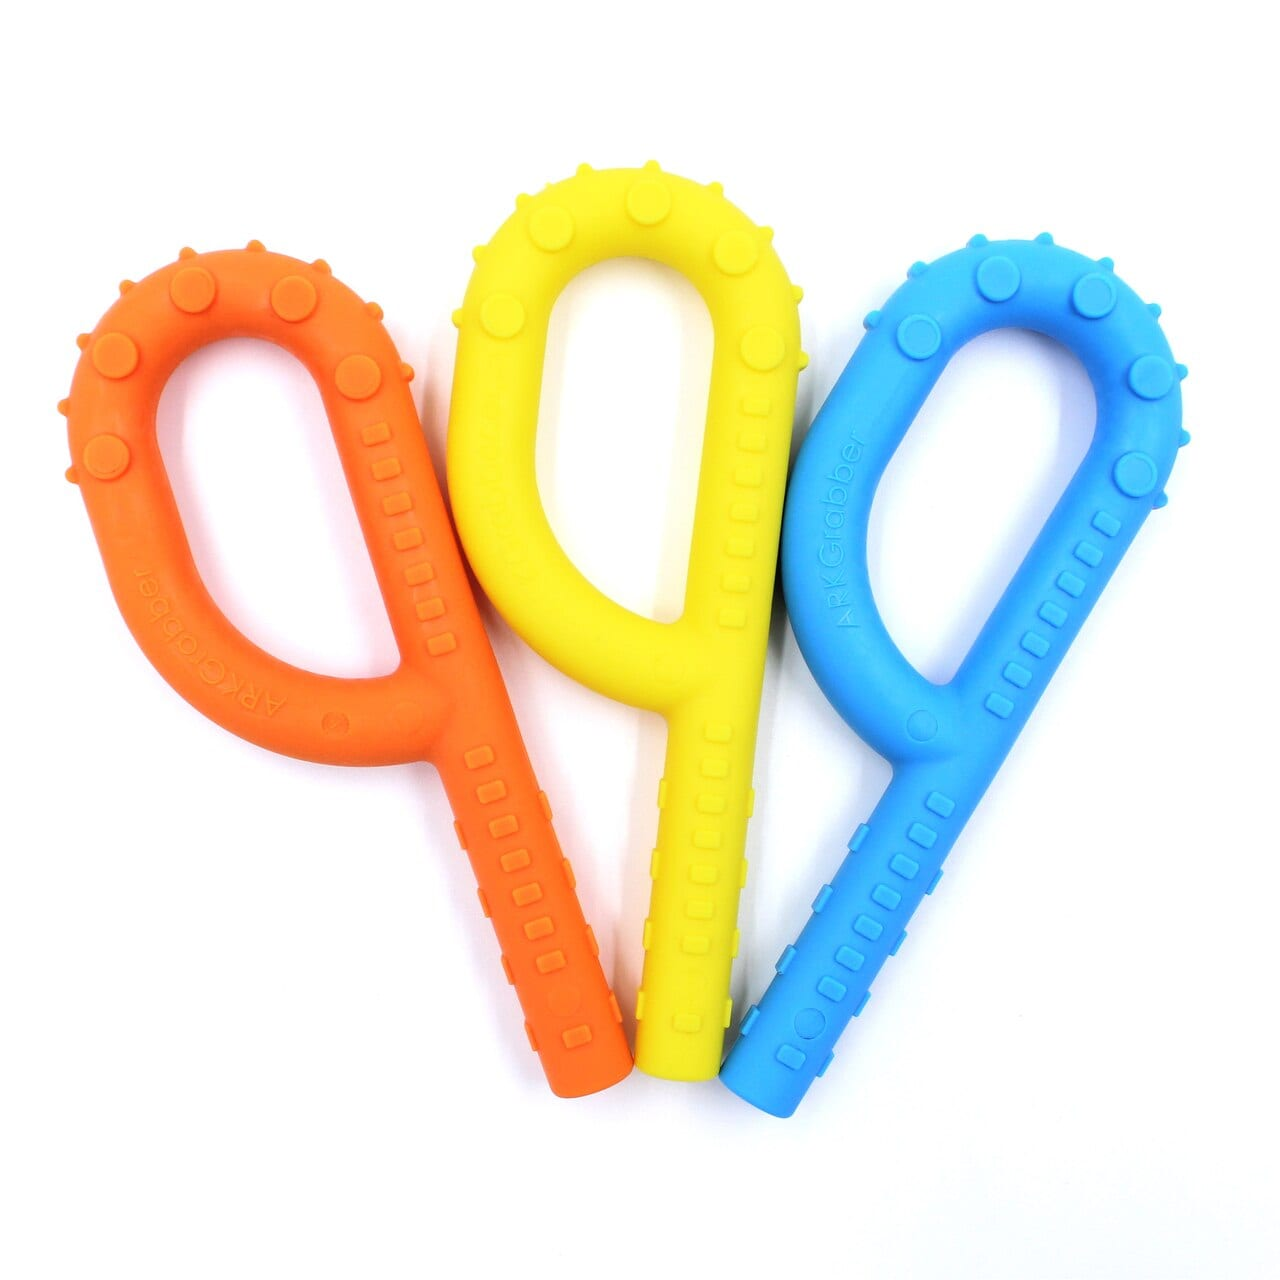 ARKs-Textured-Grabber-P-Tube-Hollow-Chew-Tool-orange-yellow-blue